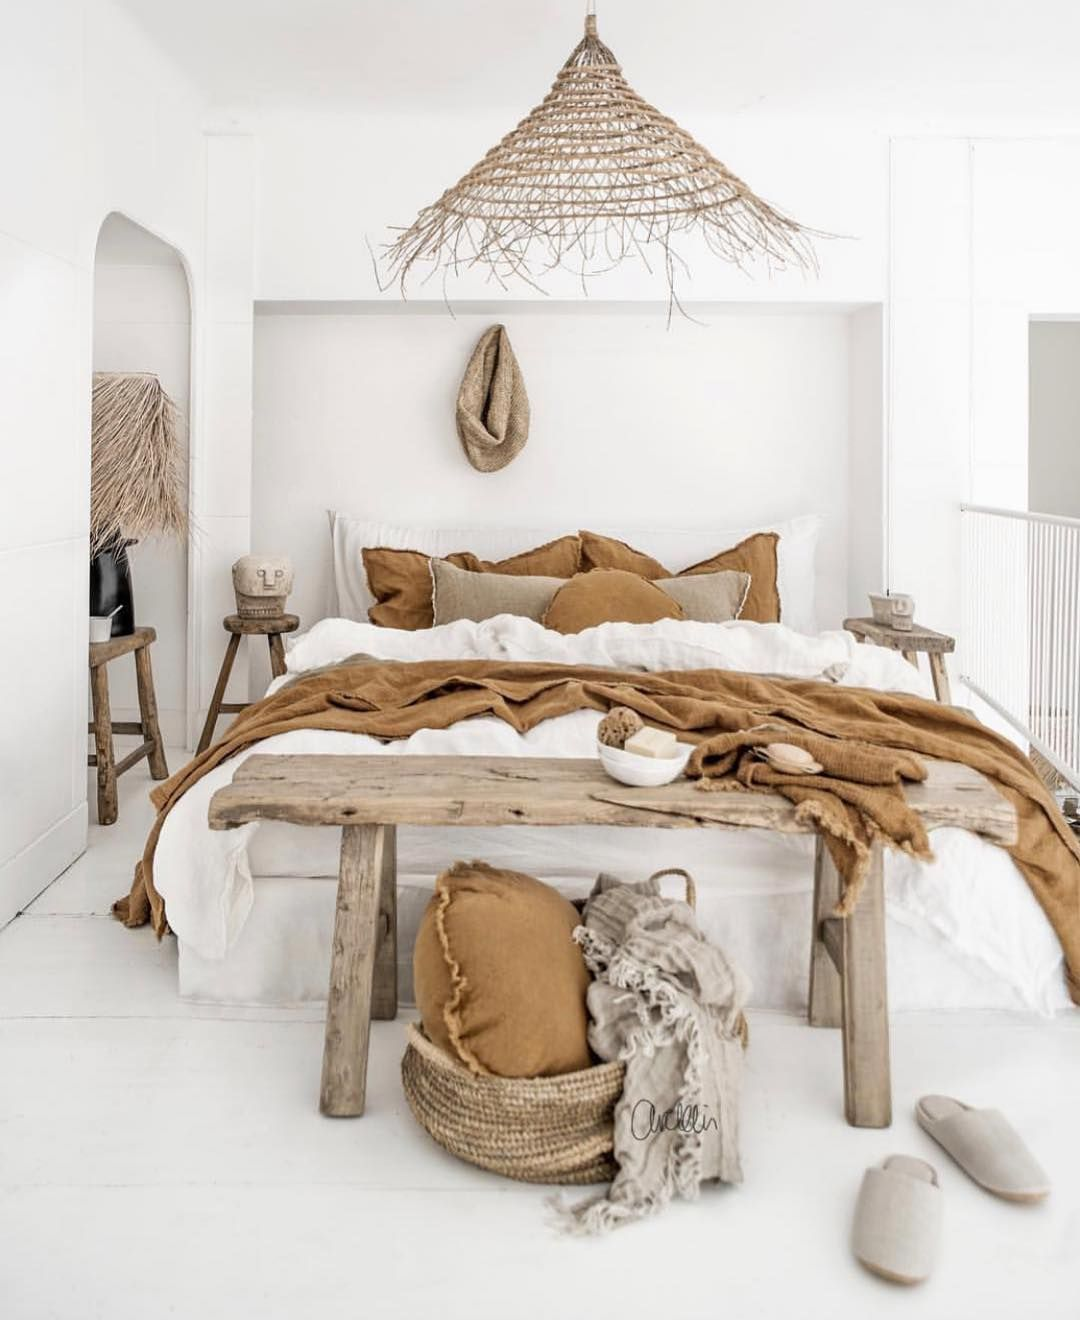 Boho styling with our pure linen bedding palette.Our entire collection is grown, spun, woven and sewn only in Europe #halemercantileco #linensheets#linenbedding #interiordesign#interiorstyle #interiordecor#scandistyle #nordicstyle #linen#linenlife #vogueliving#countrystyle